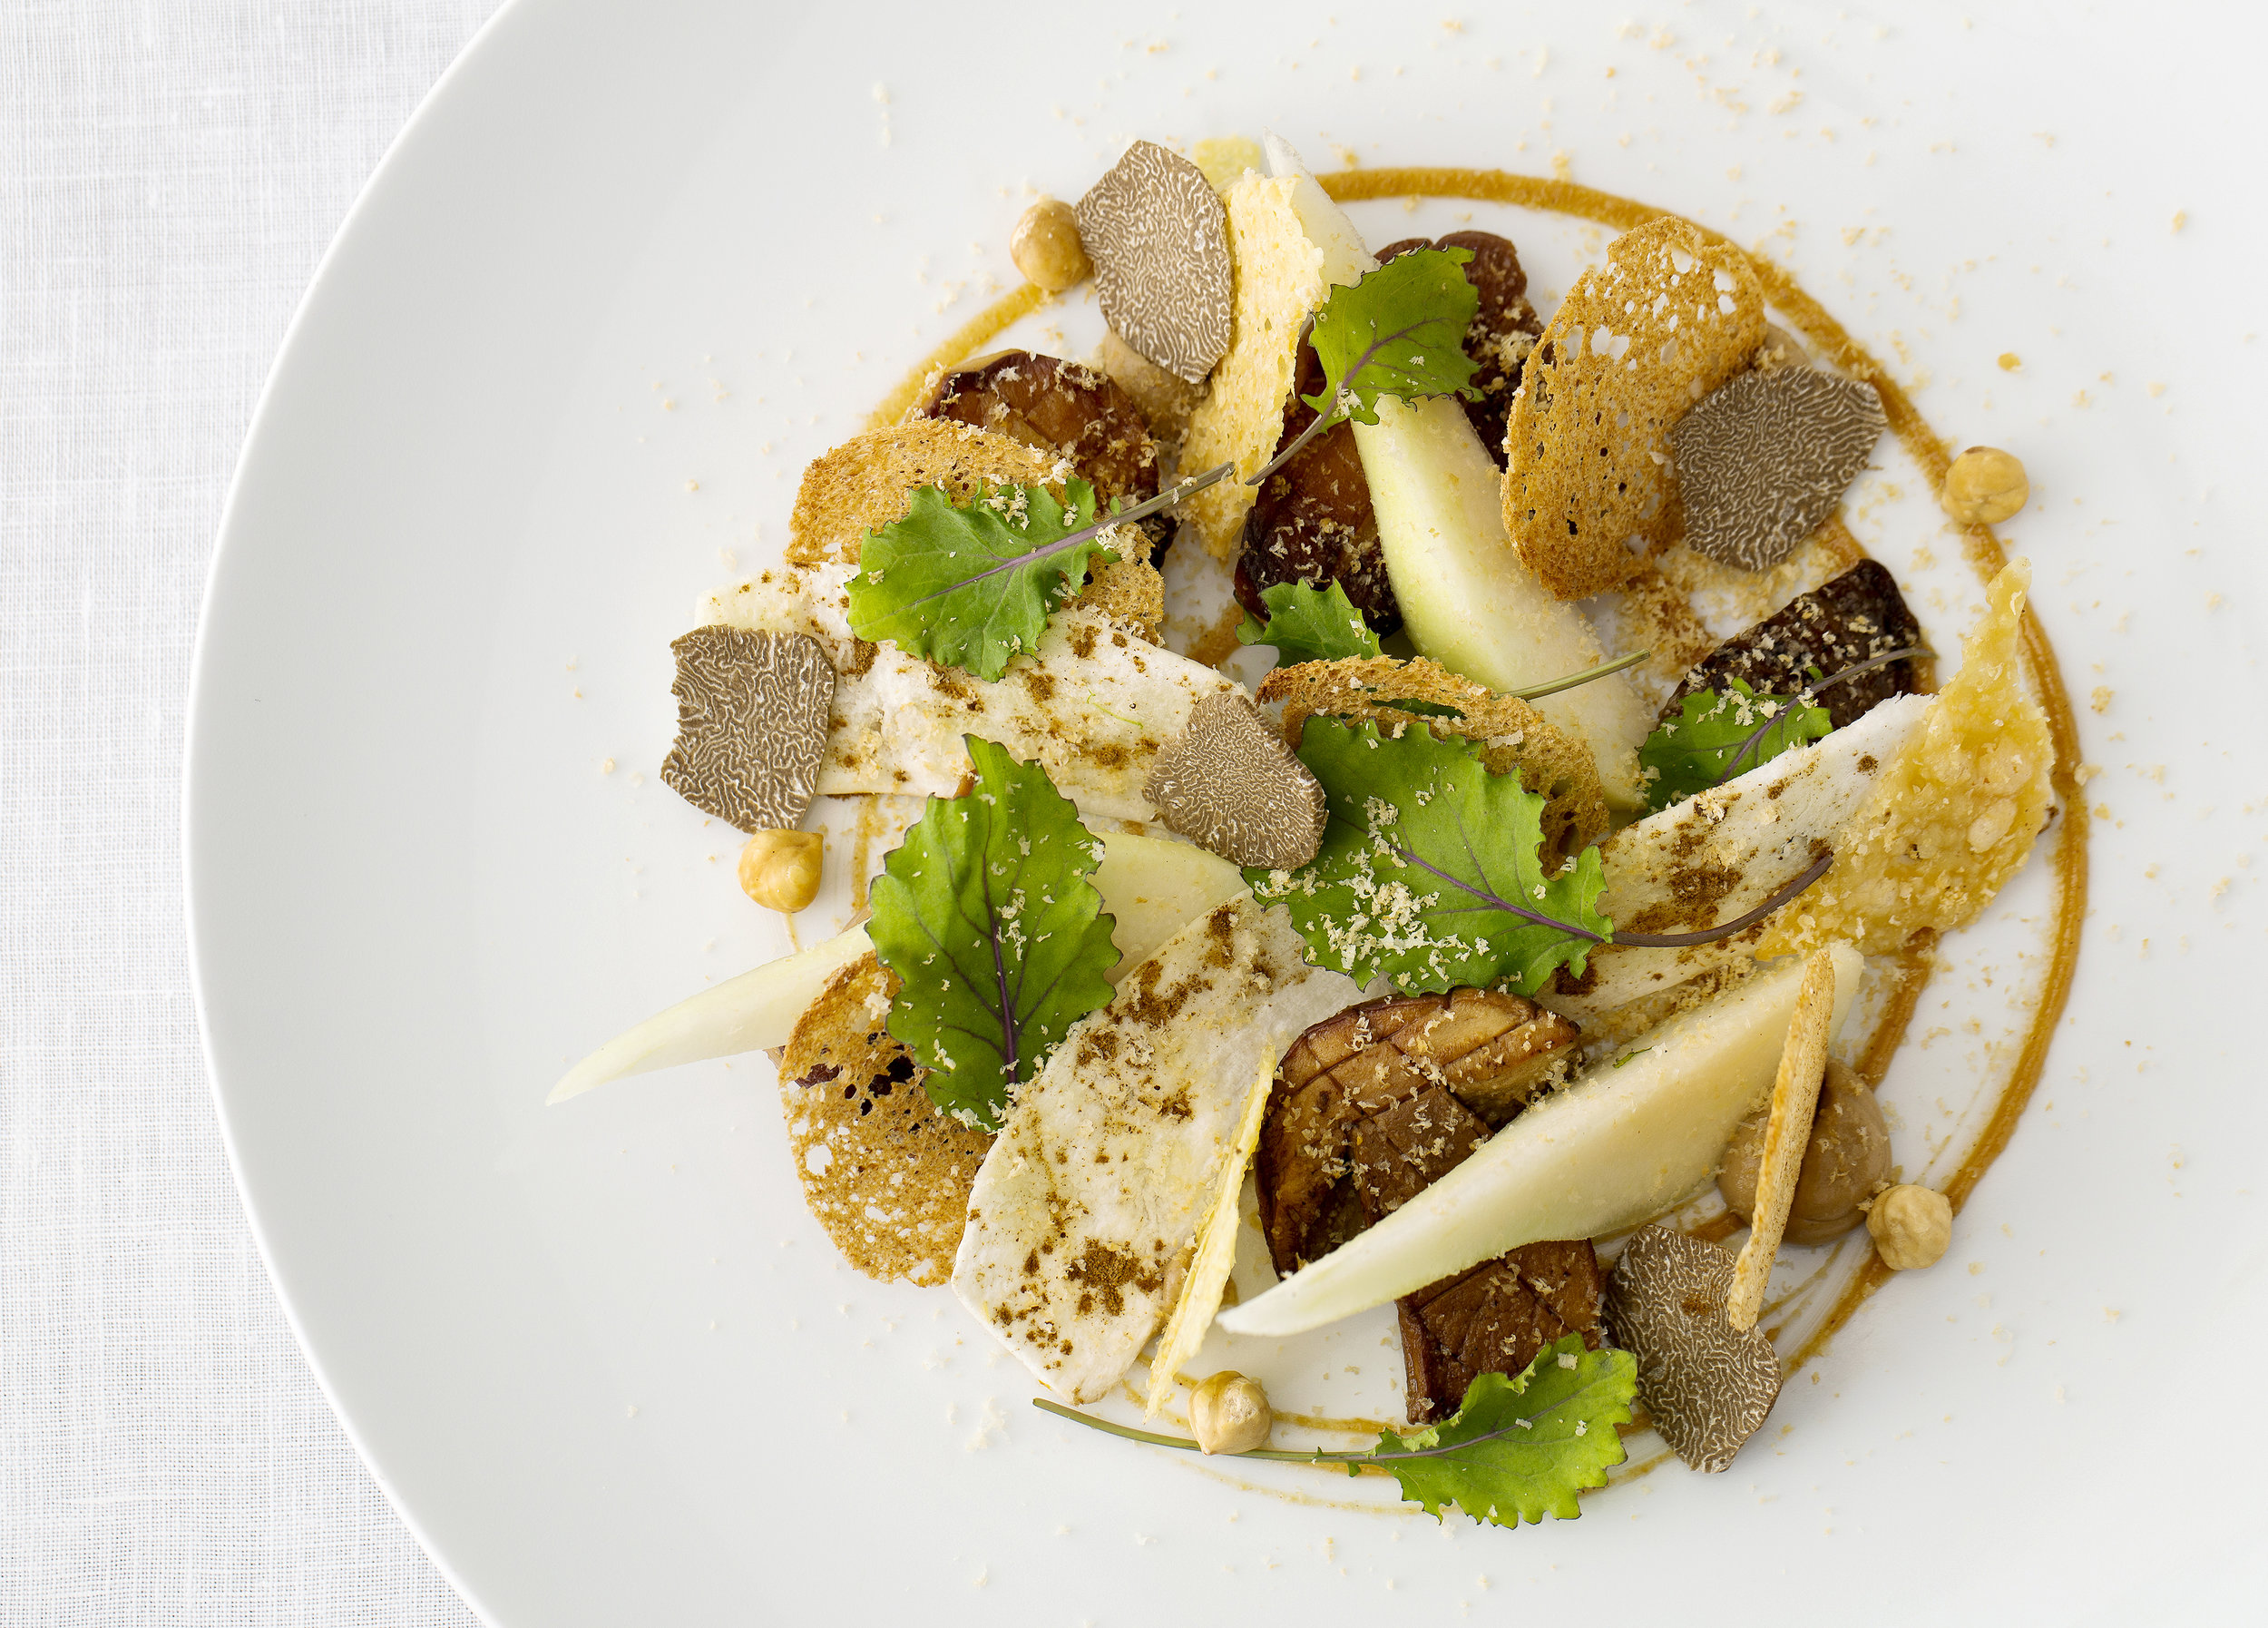 New forest wild mushroom salad, roasted hazelnut, pears and sourdough croutons_2.jpg